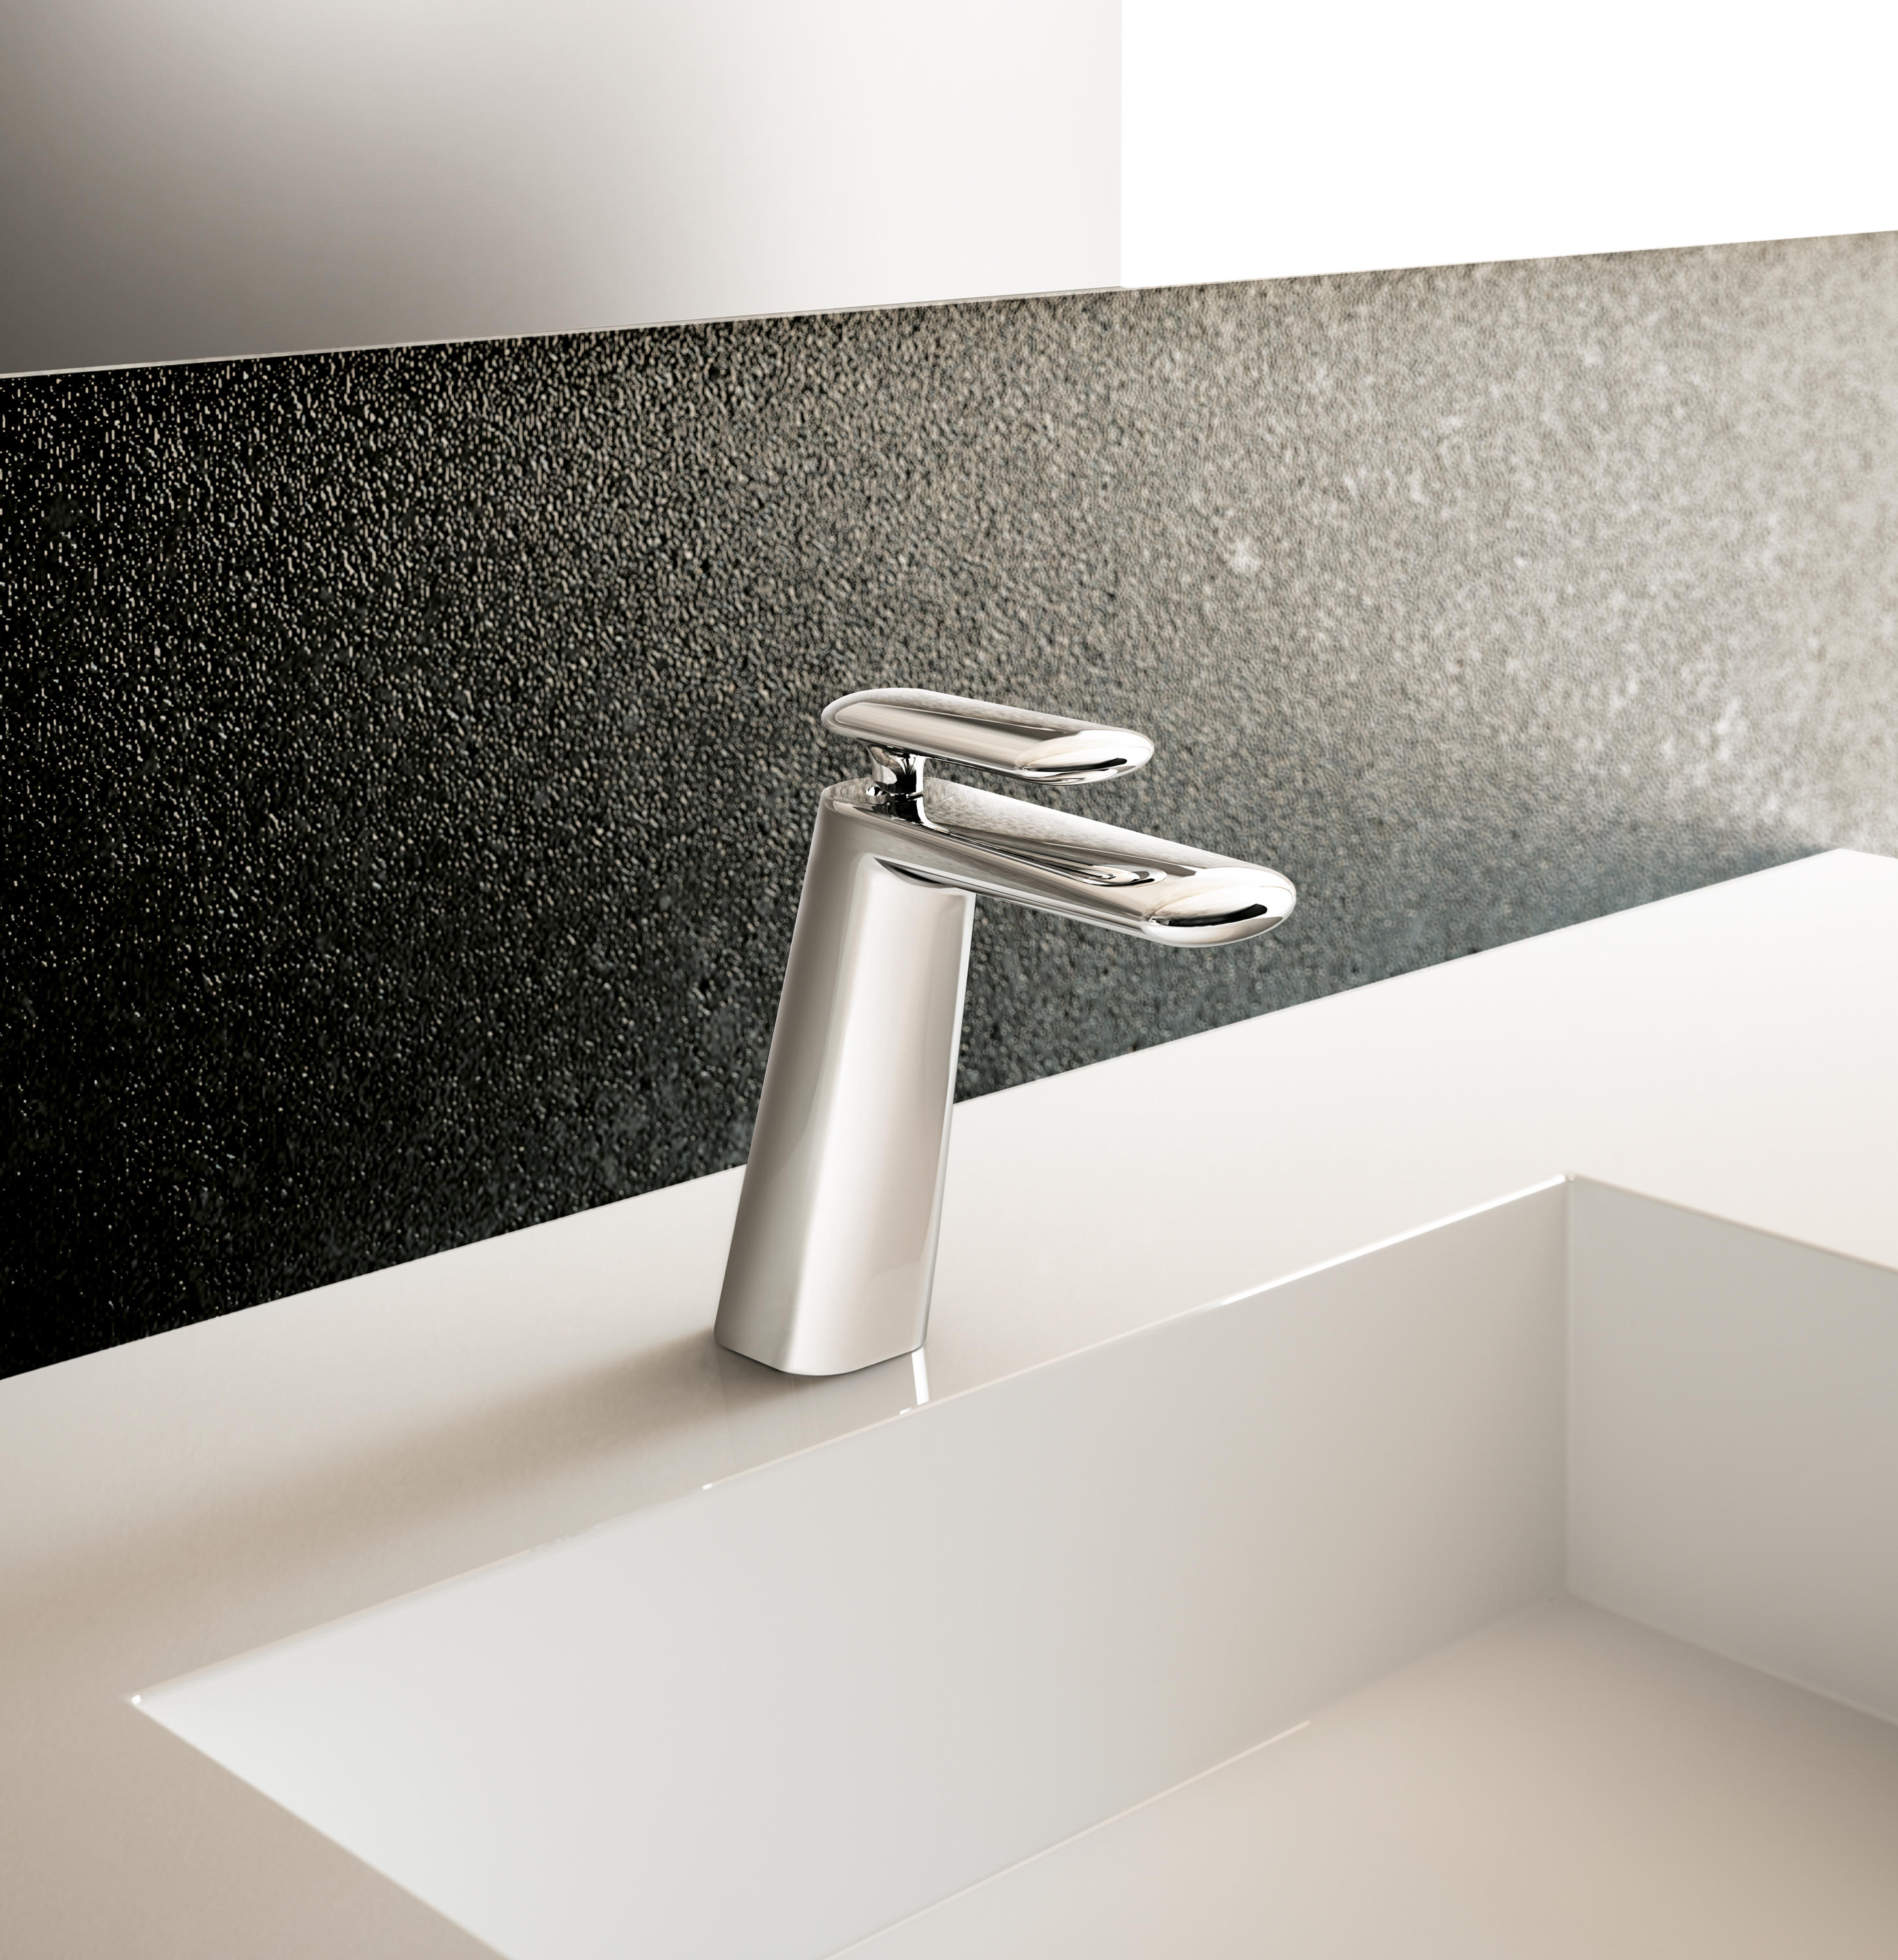 DYNAMICA 88 - Wash-basin taps from Fir Italia | Architonic